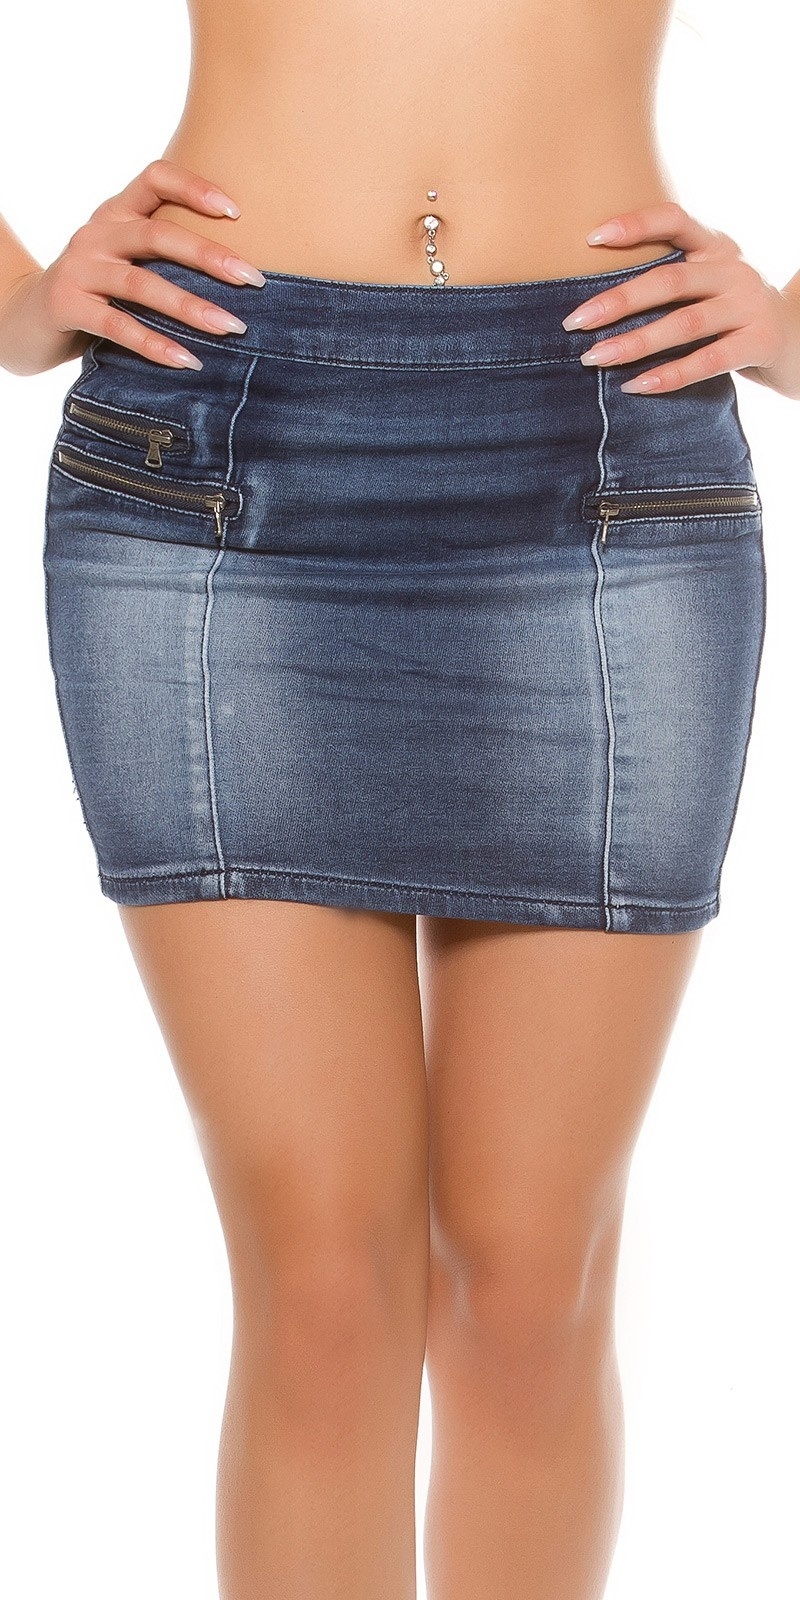 Sexy jeans mini skirtwith zip pockets Jeansblue